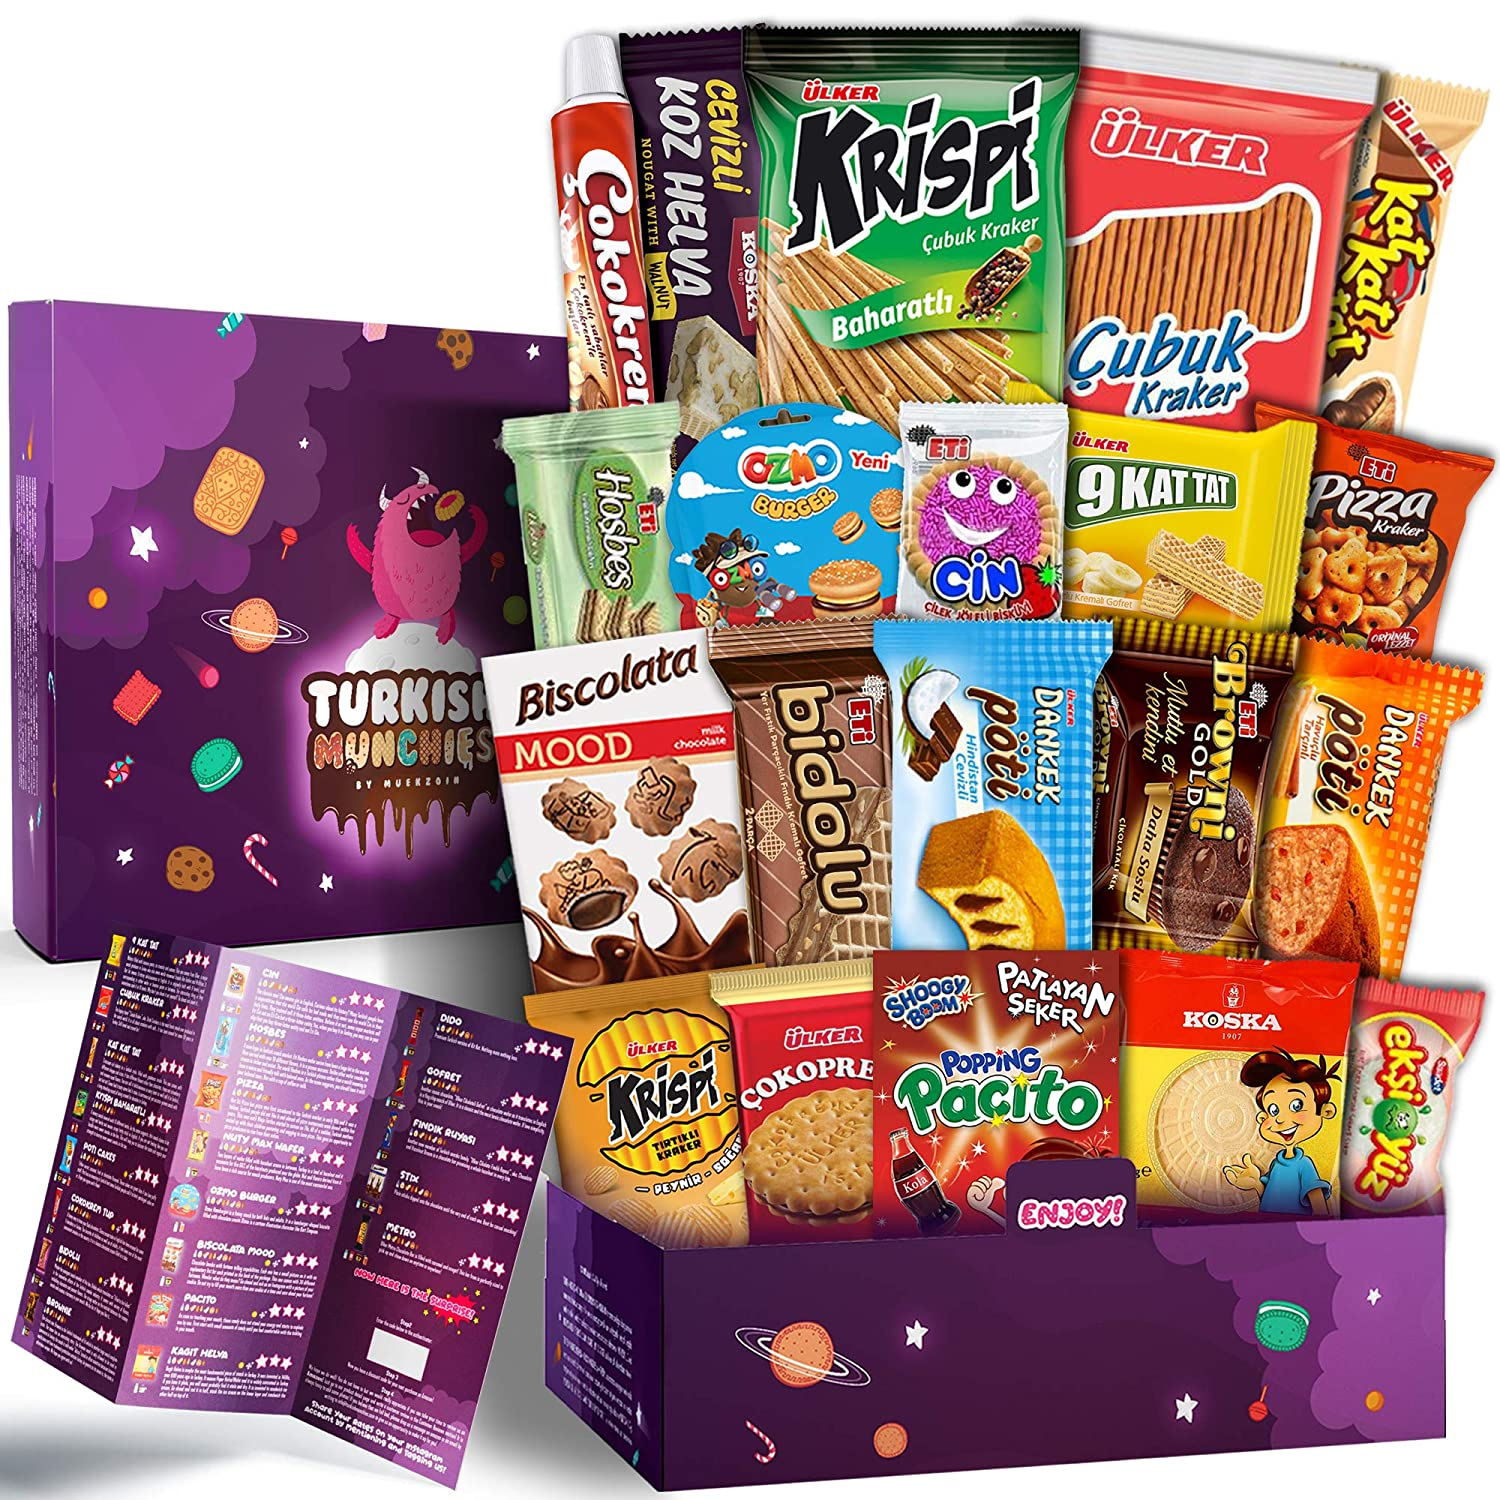 Maxi Premium International Snacks Variety Pack Care Package for Adults and Kids, Ultimate Assortment of Turkish Treats, Mix variety pack of Foreign Candy or Foreign Snacks Box Summer Limited Edition